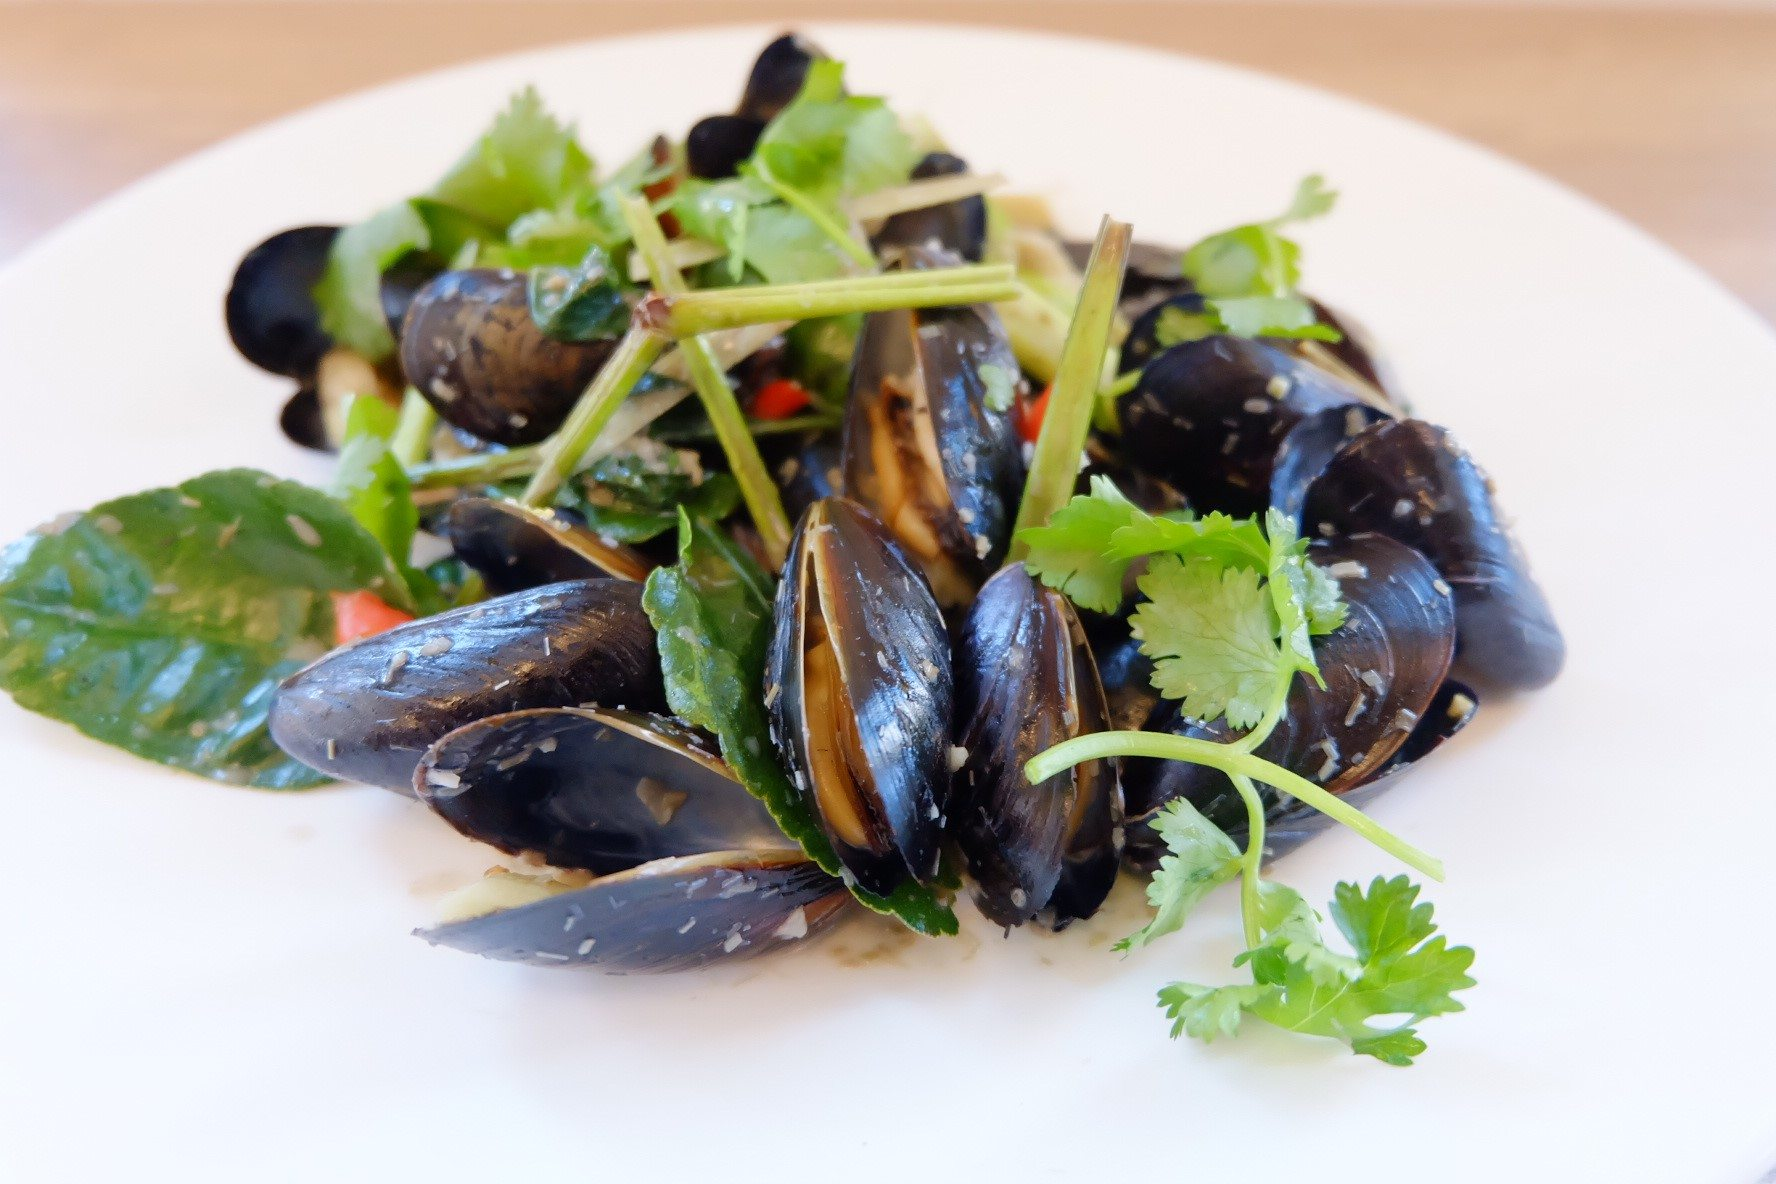 Coconut Mussels from Sen Asian Cuisine sees Canadian mussels fused with a delicious Vietnamese snail recipe, coconut milk, lemongrass, Asian herbs, and sake